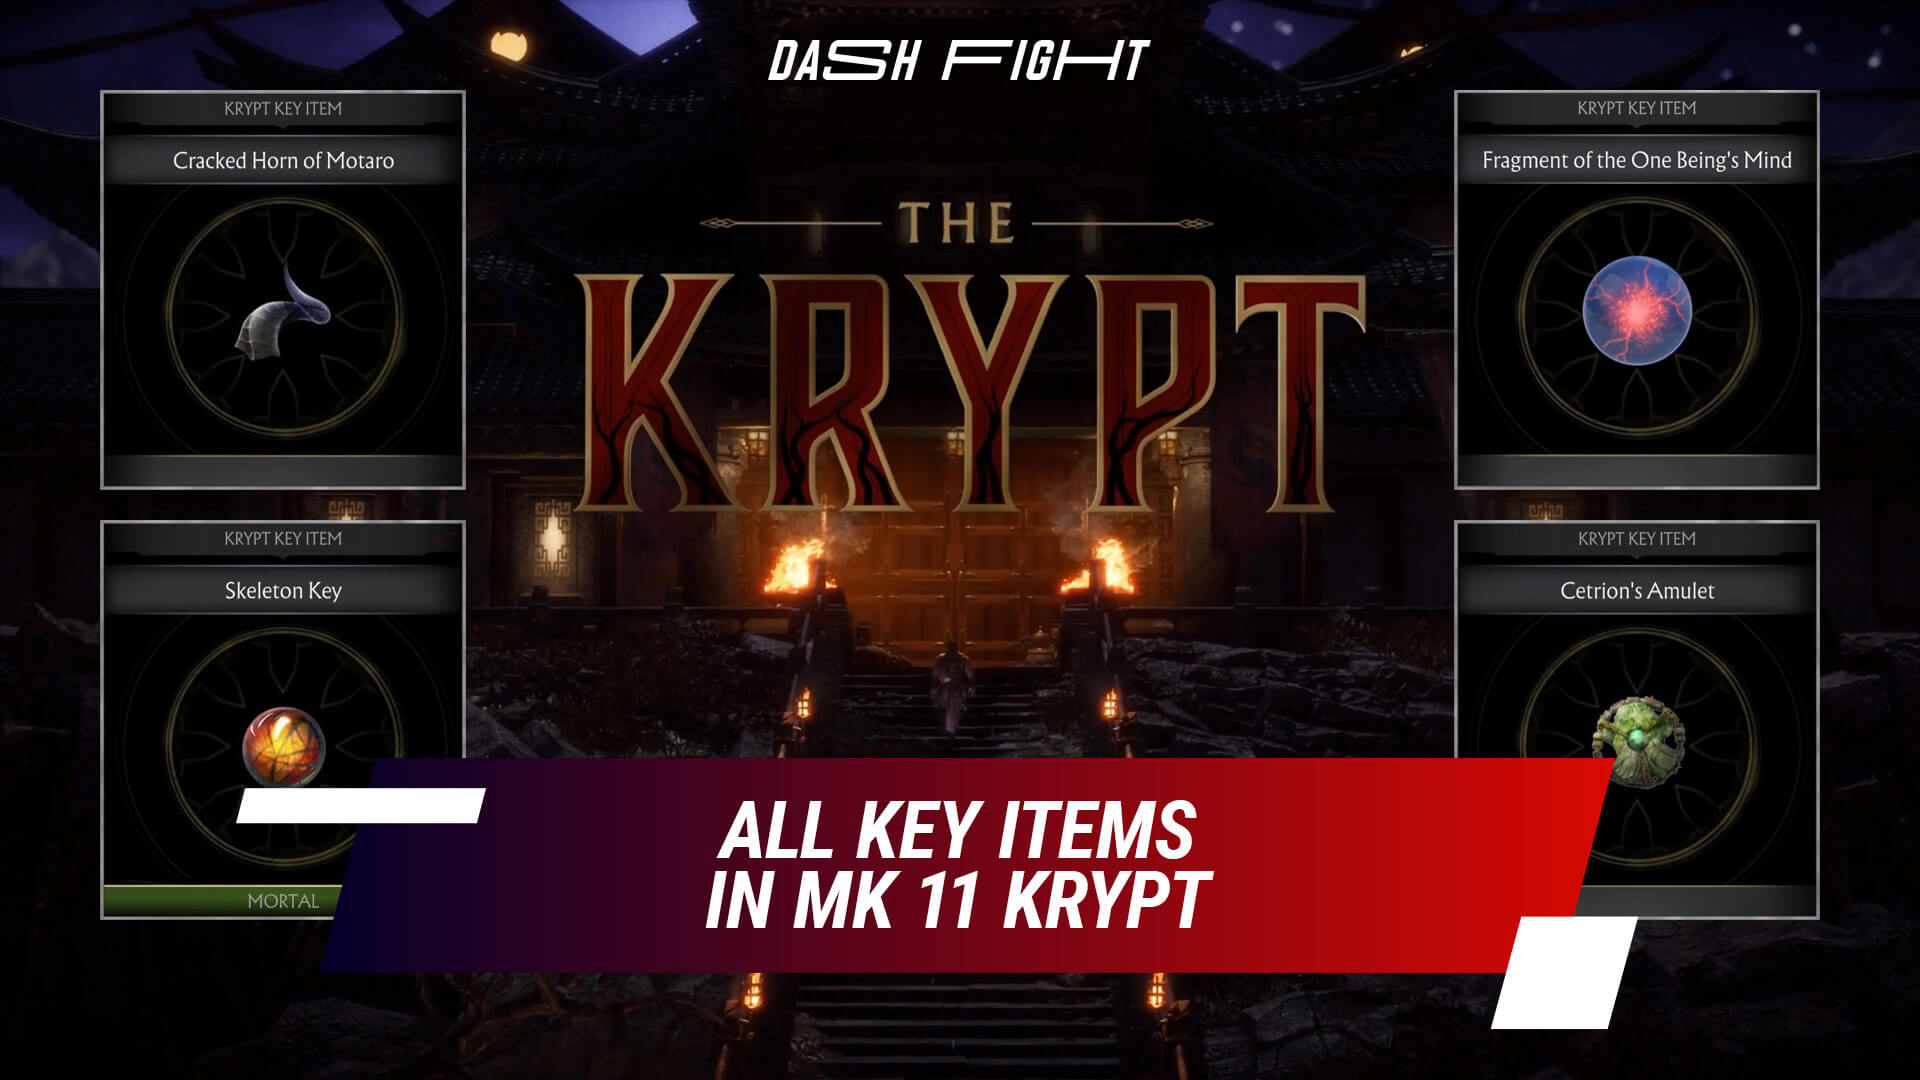 All Key Items in MK11 Krypt Locations and Use